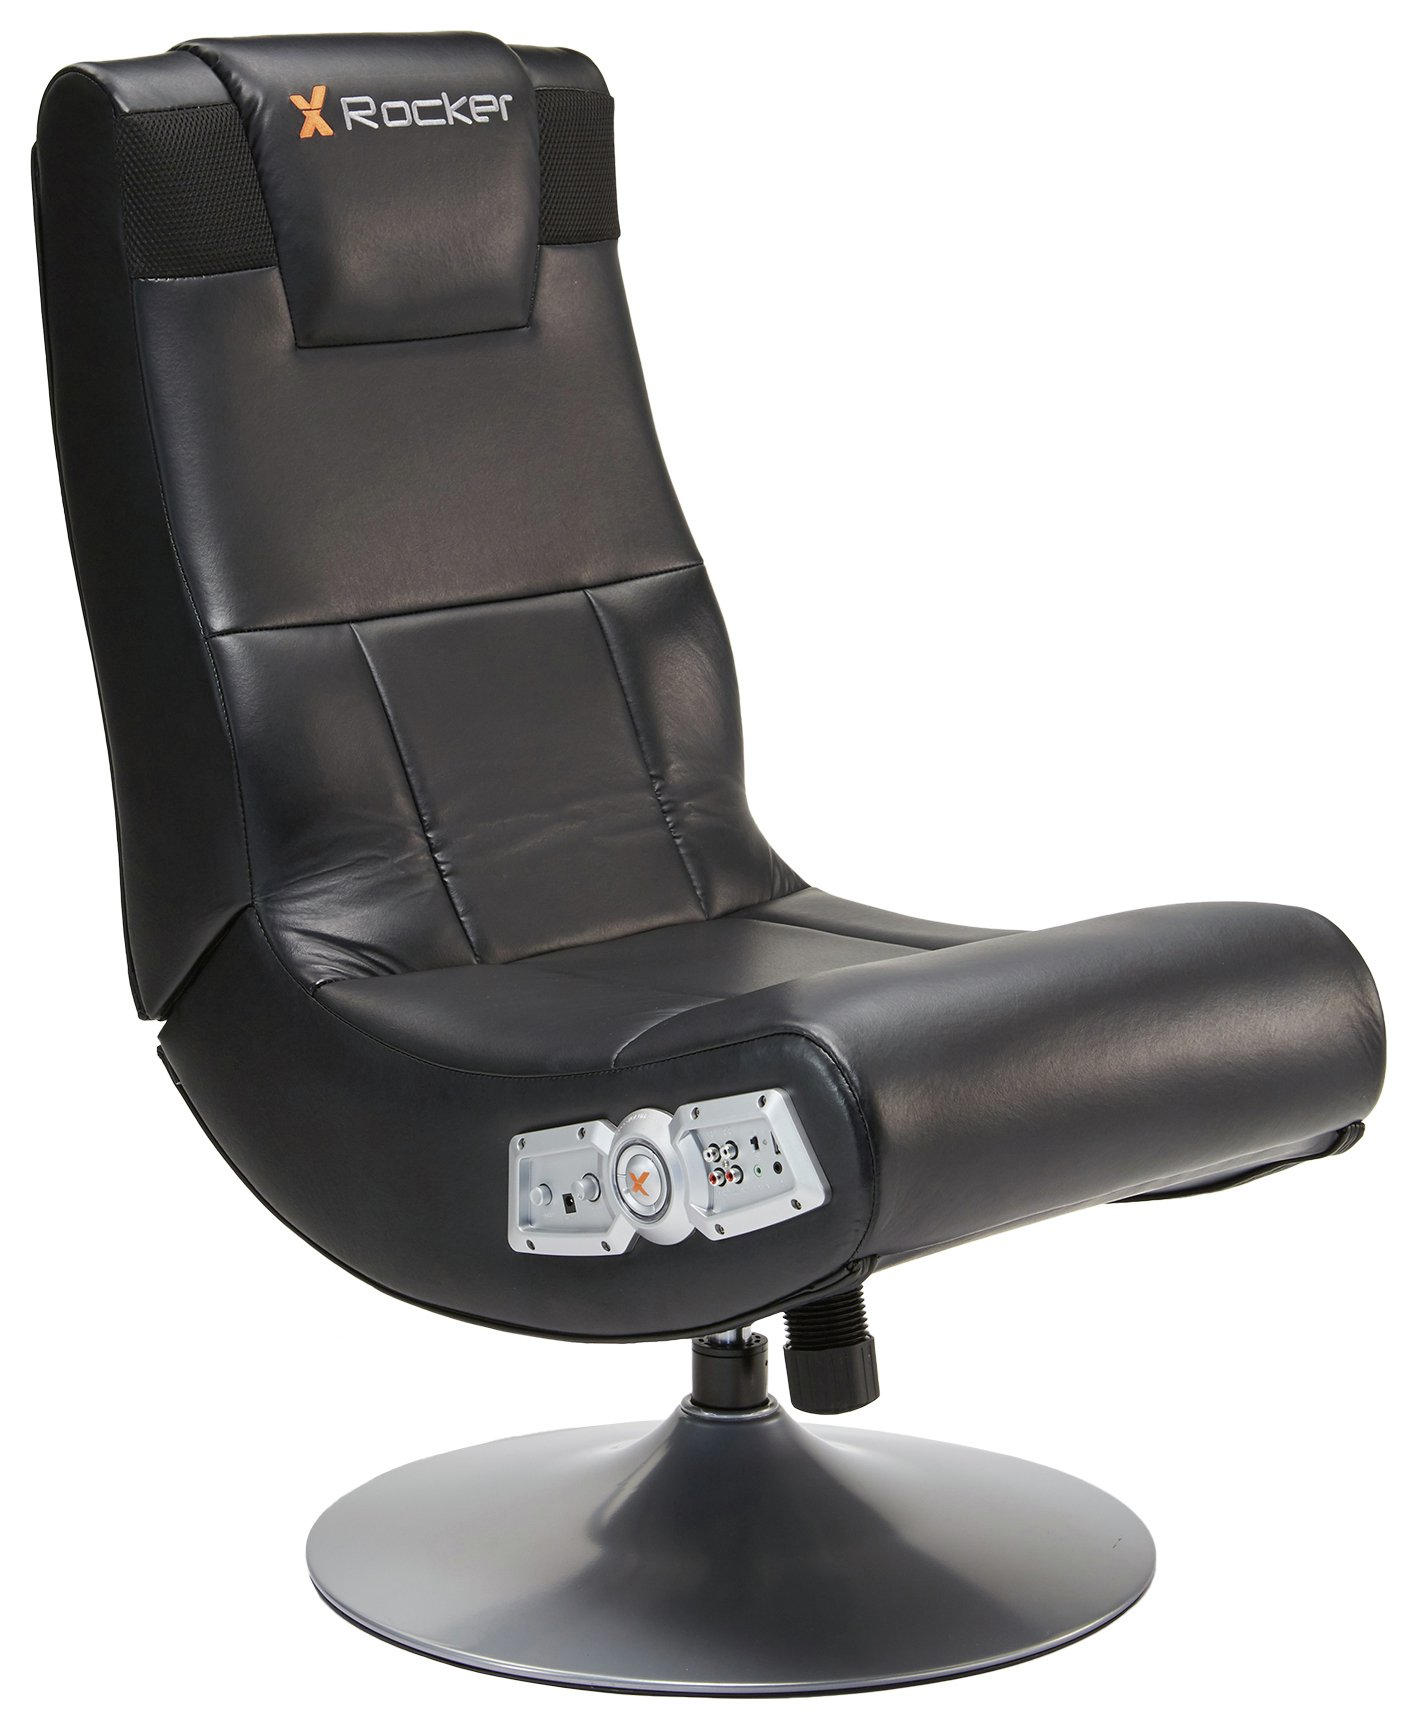 best gaming chair for ps4 cover hire perth scotland x rocker pedestal xbox one